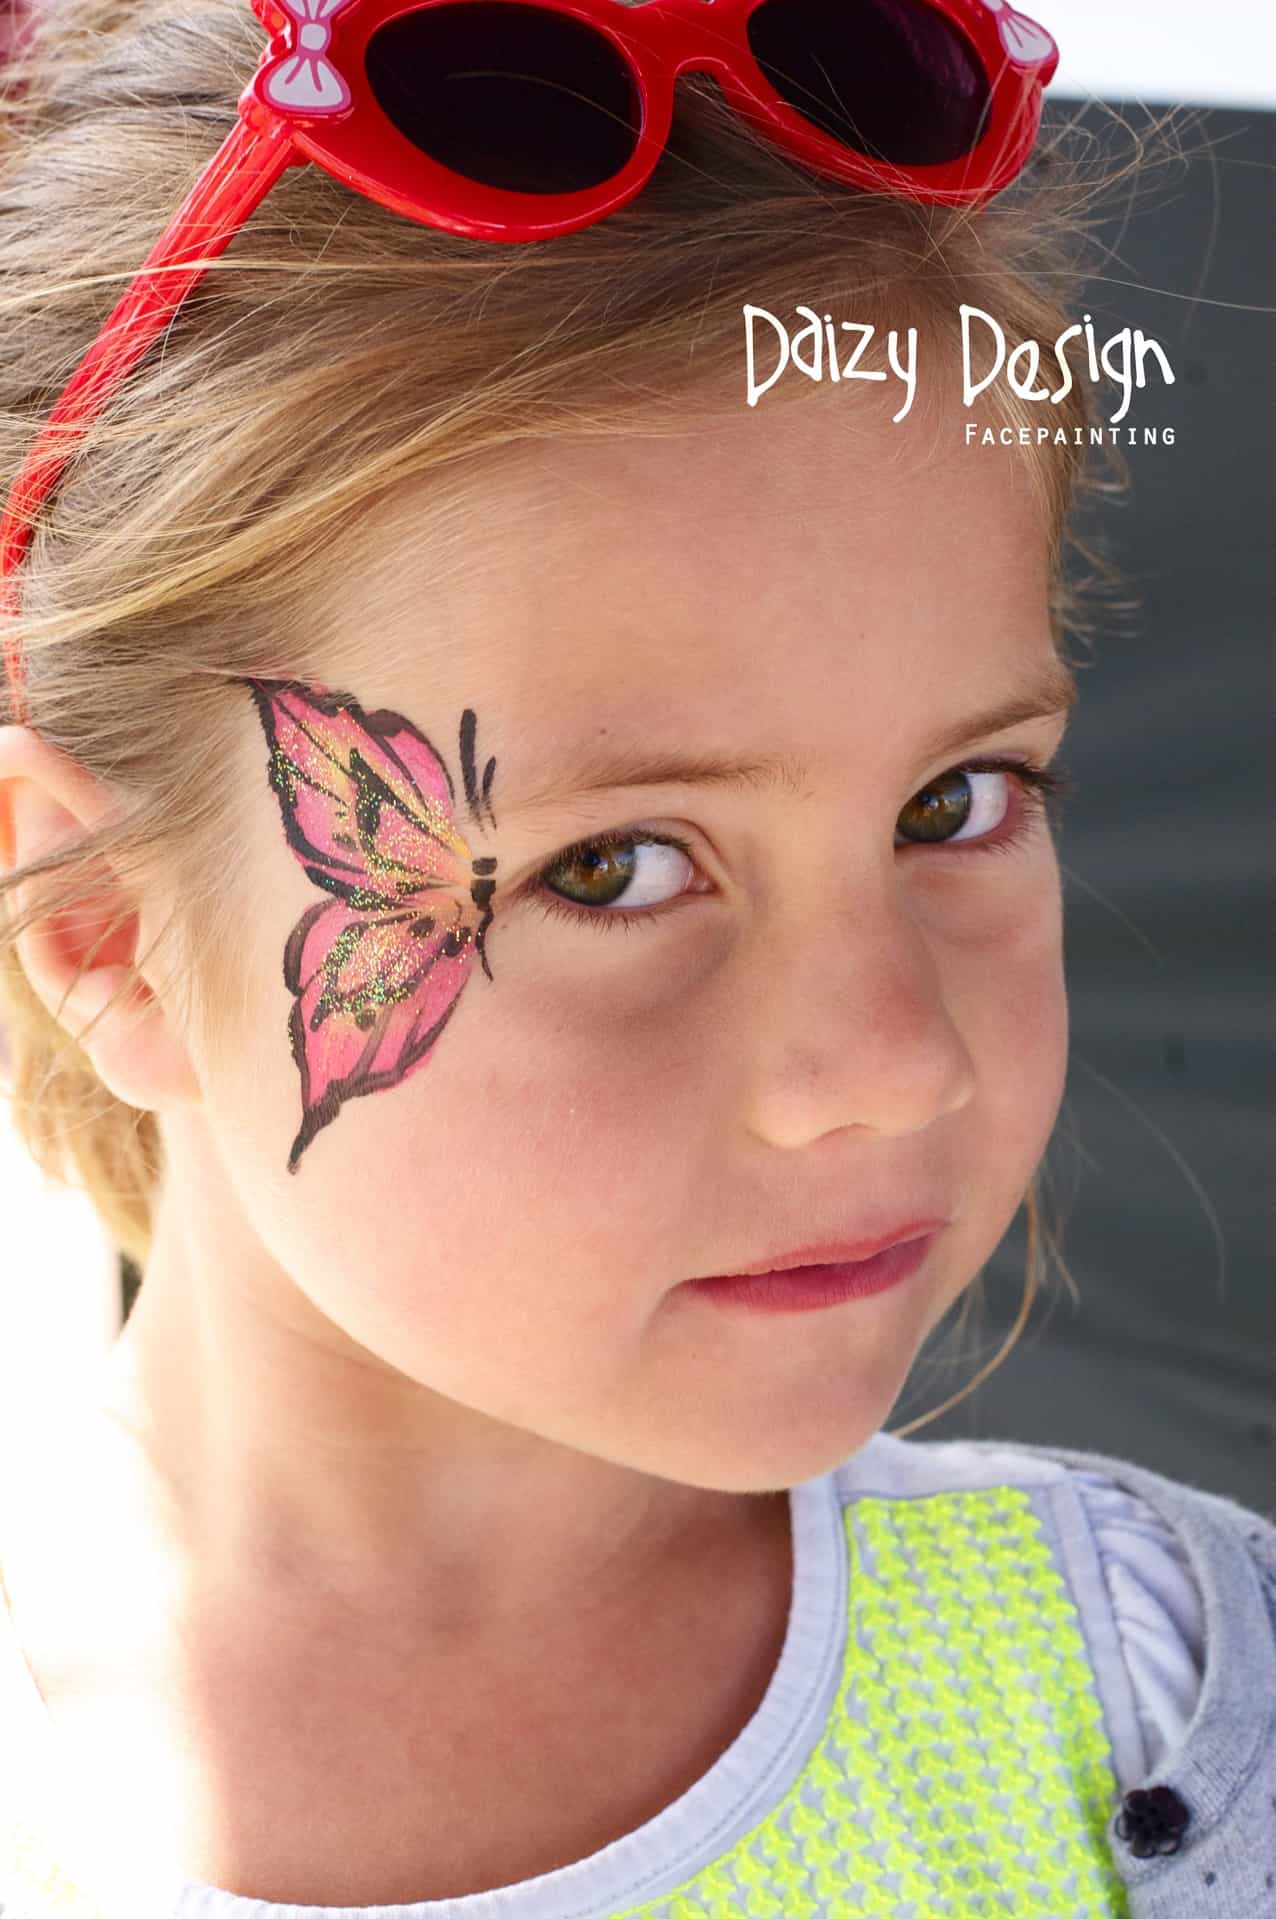 Cute Face Painting Designs For Your Kids This Summer - Simple face painting